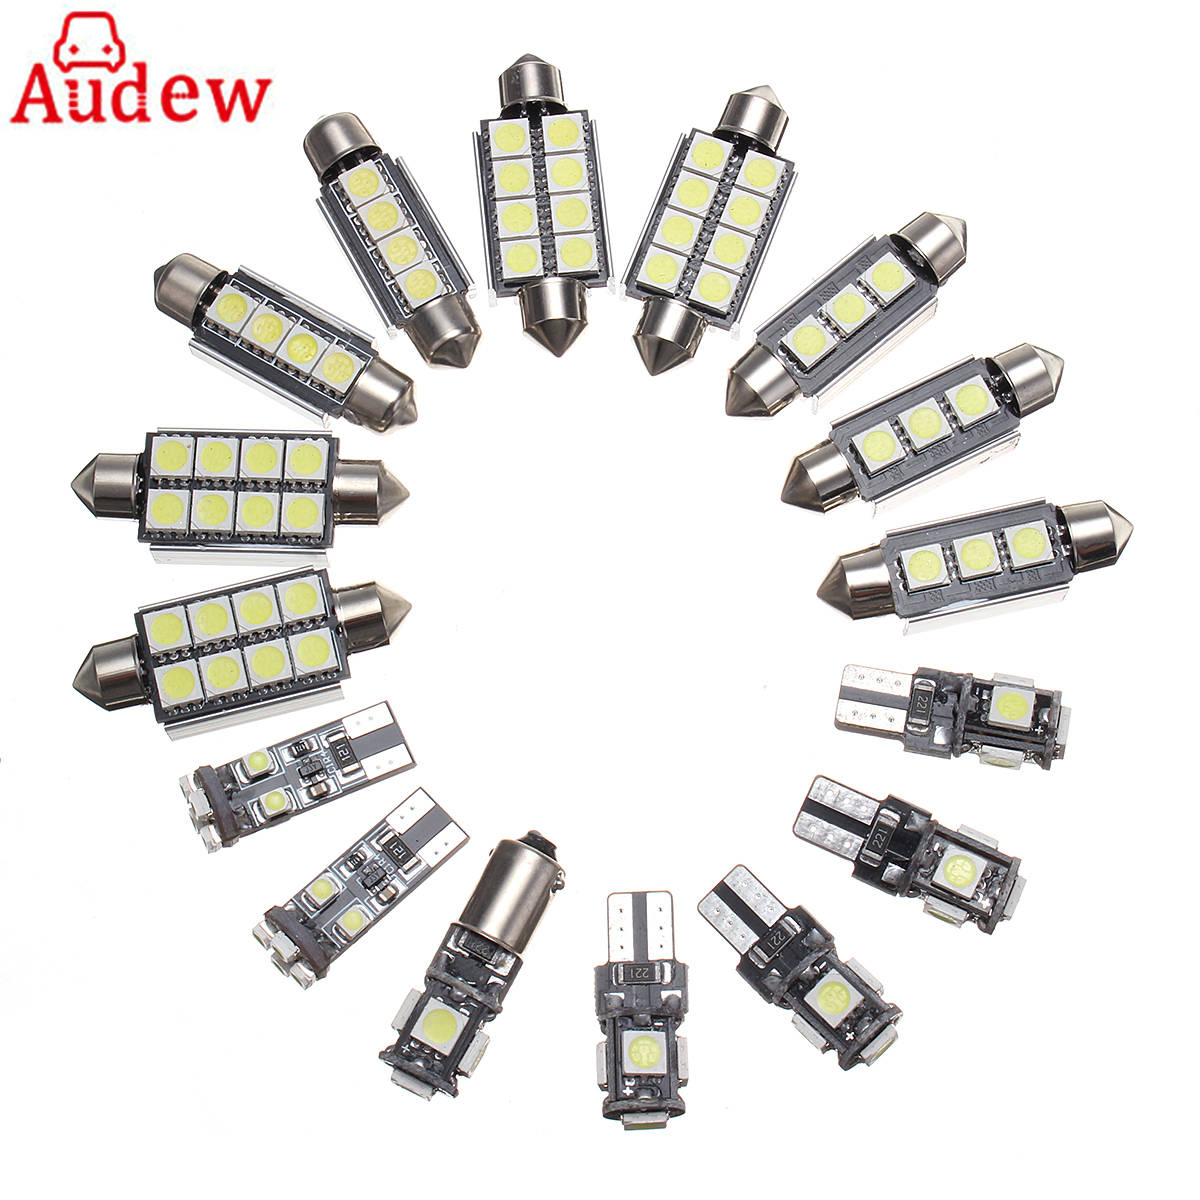 16Pcs Car Interior LED Light Bulbs For Mercedes/Benz M Class W 164(2006-2011) White 2 x t10 led w5w canbus car side parking light bulbs with projector lens for mercedes benz c250 c300 e350 e550 ml550 r320 r350